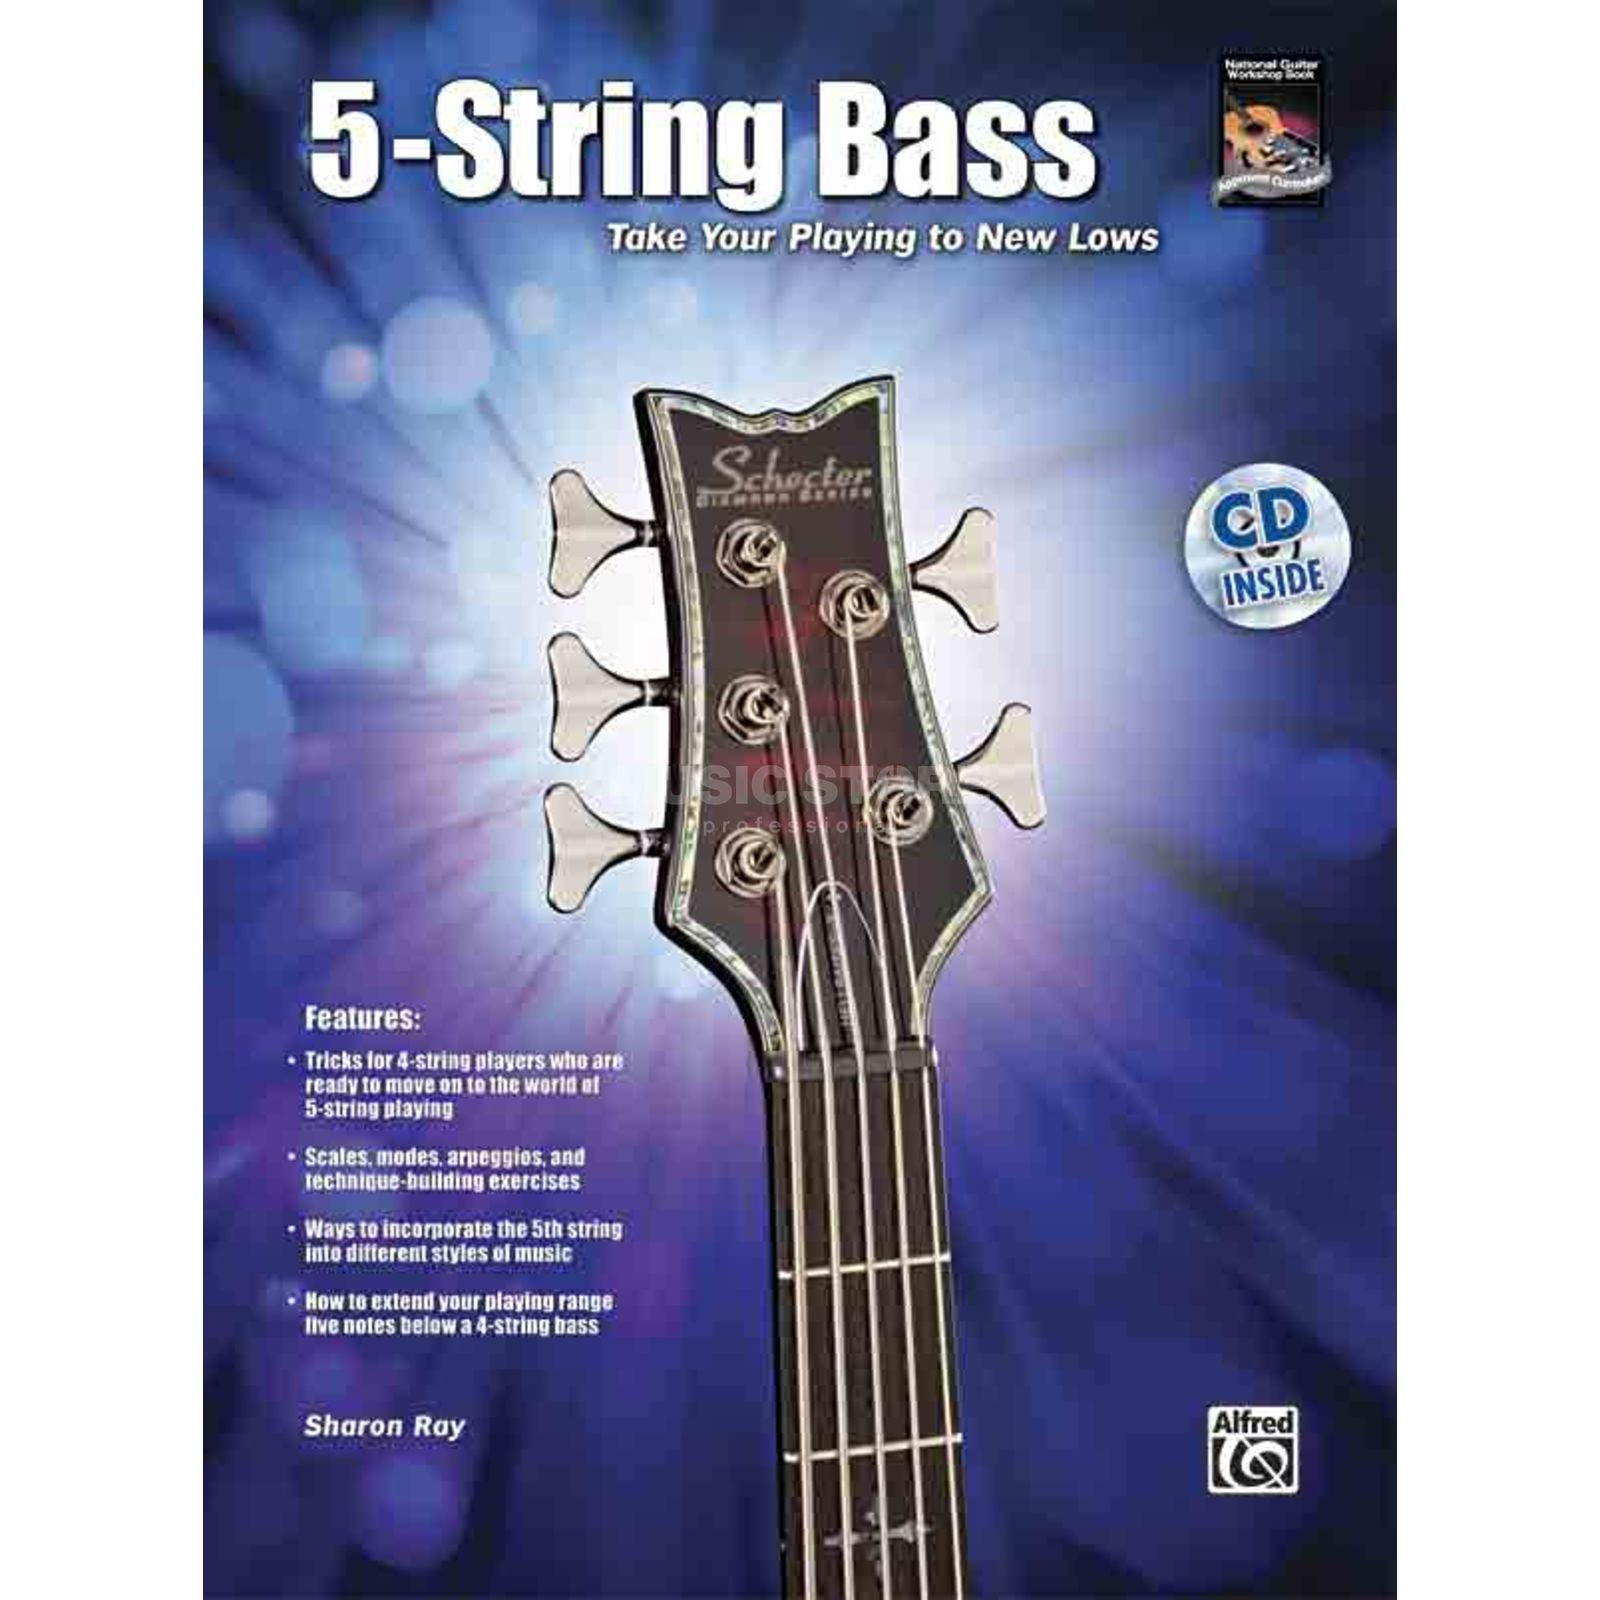 Alfred Music 5-String Bass Sharon Ray inkl. CD Produktbild